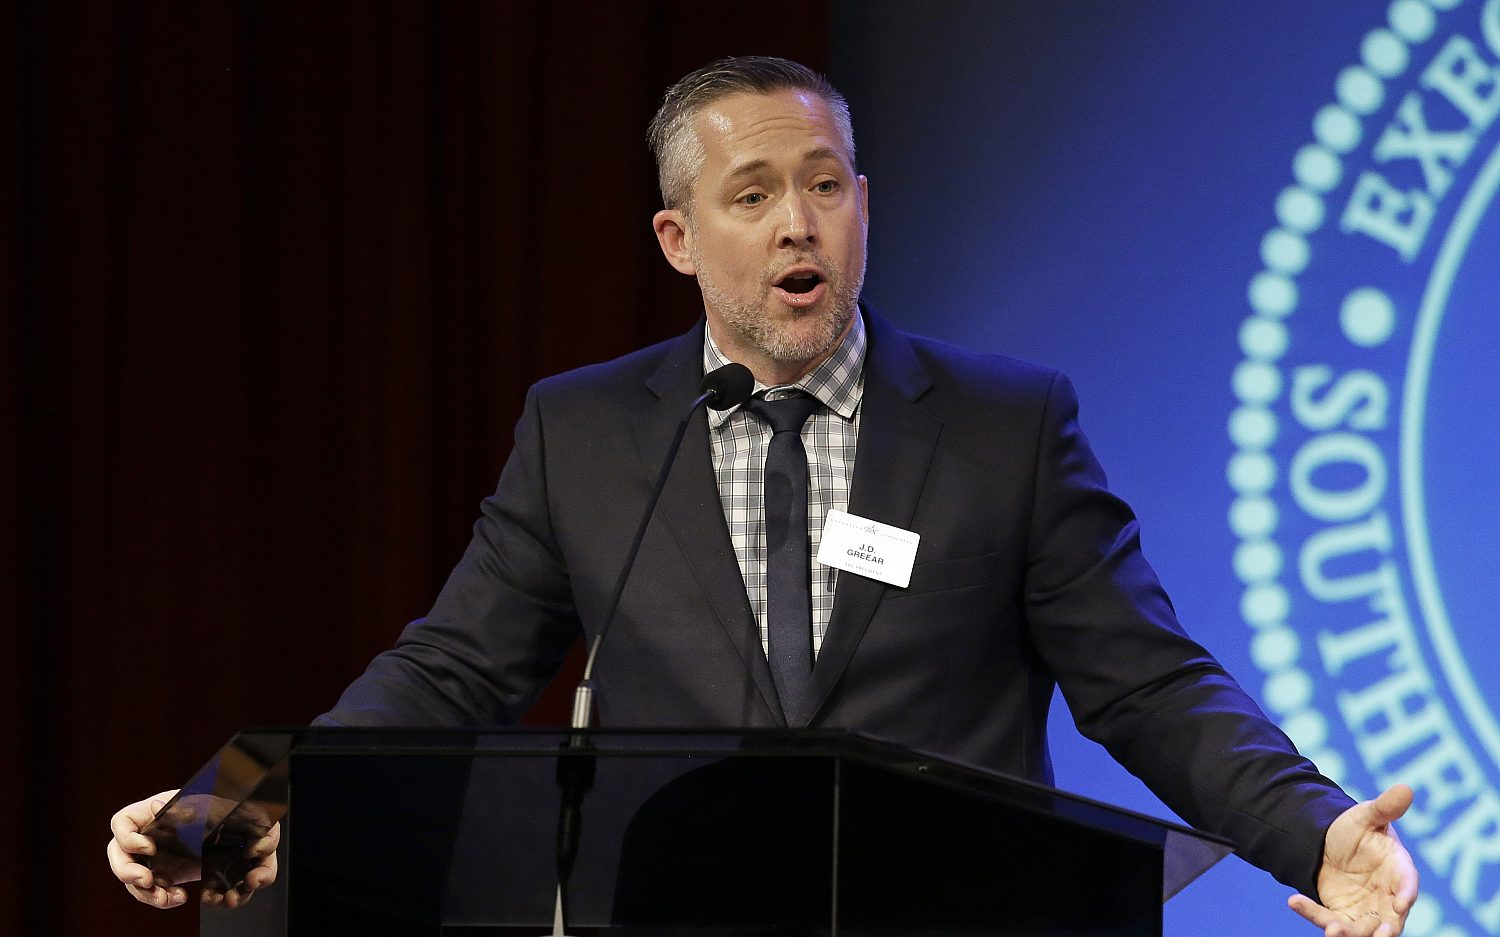 SBC leader proposes reforms to address sexual abuse